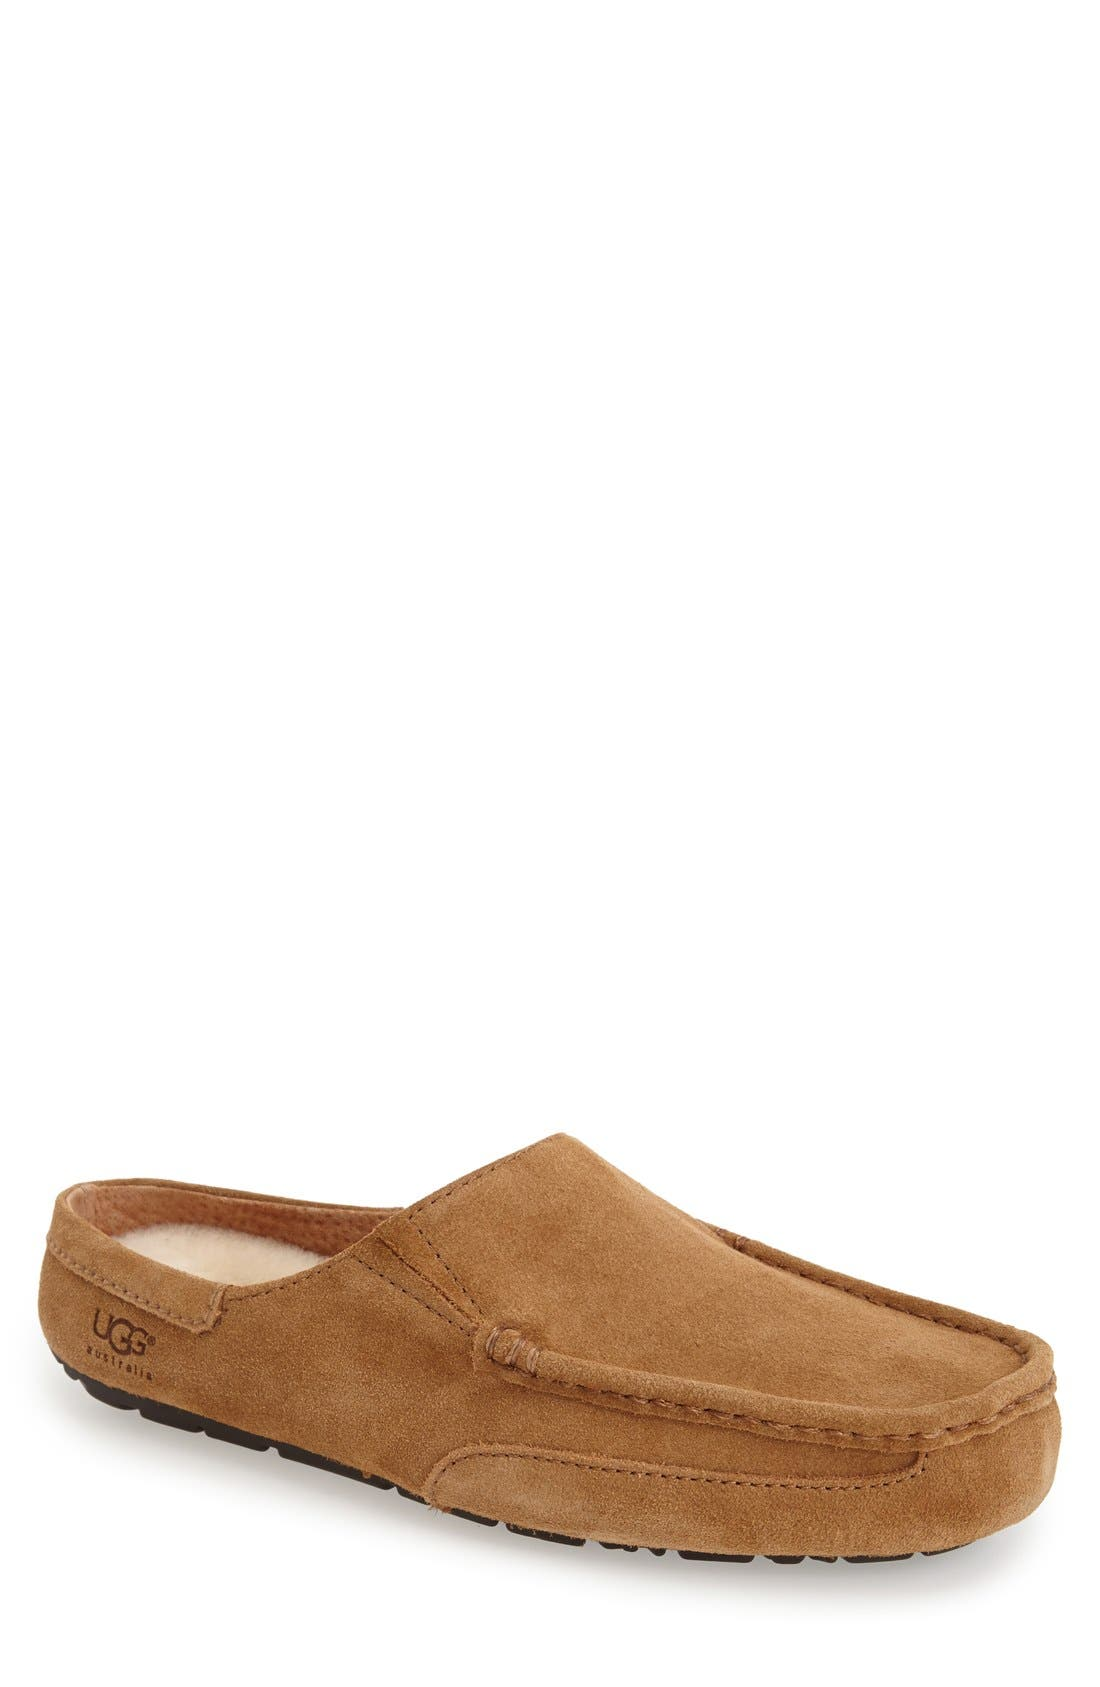 Alternate Image 1 Selected - UGG® Alamar Twinsole® Slip-On (Men)